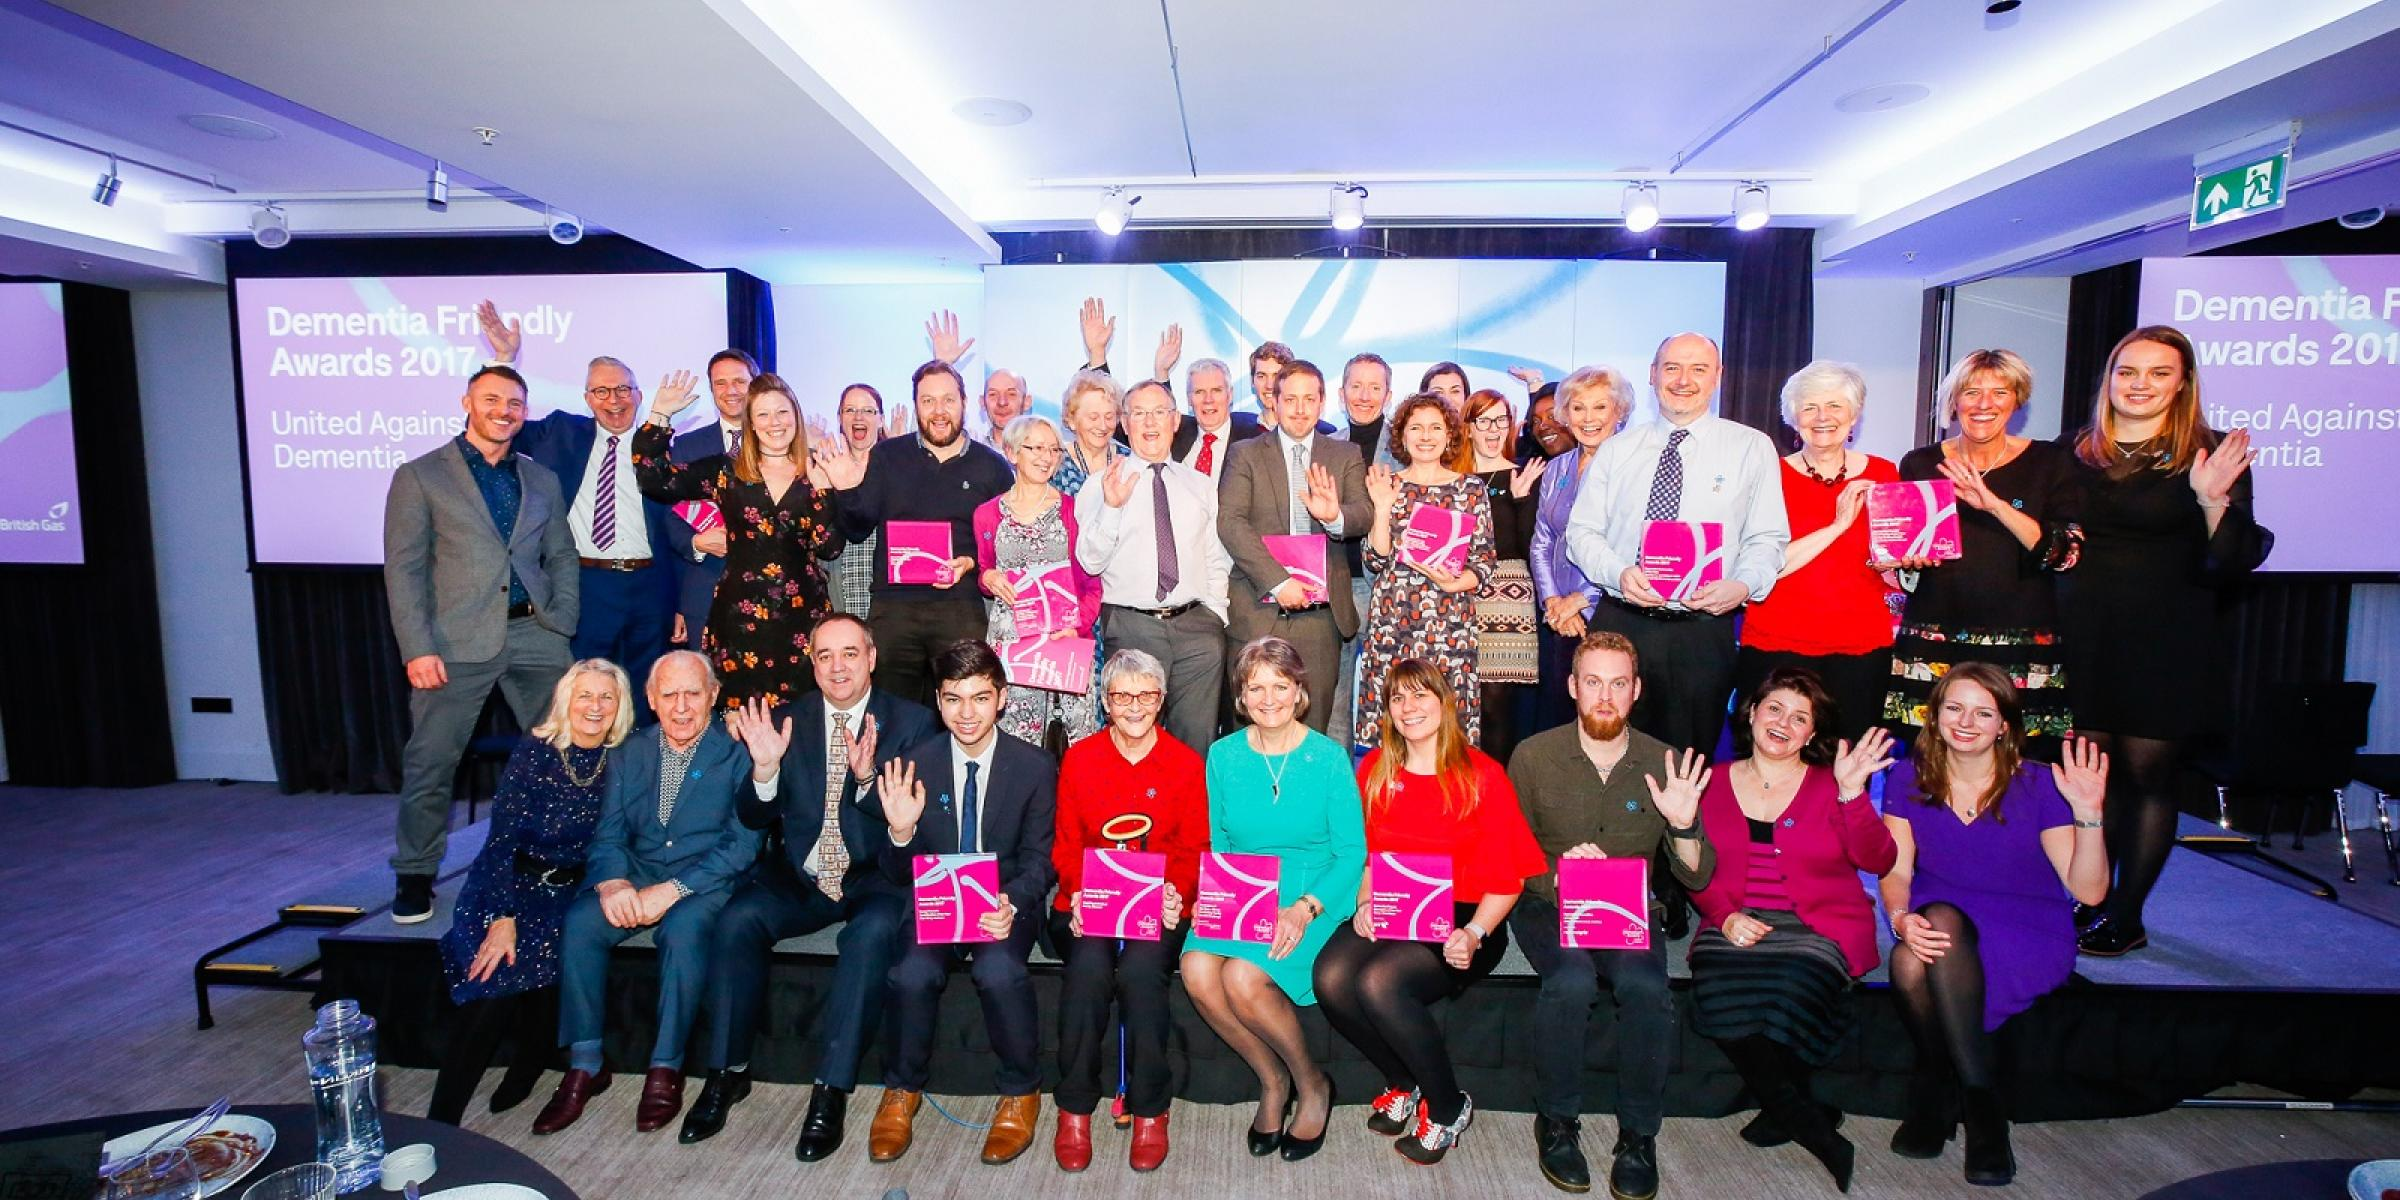 Dementia Friendly Awards